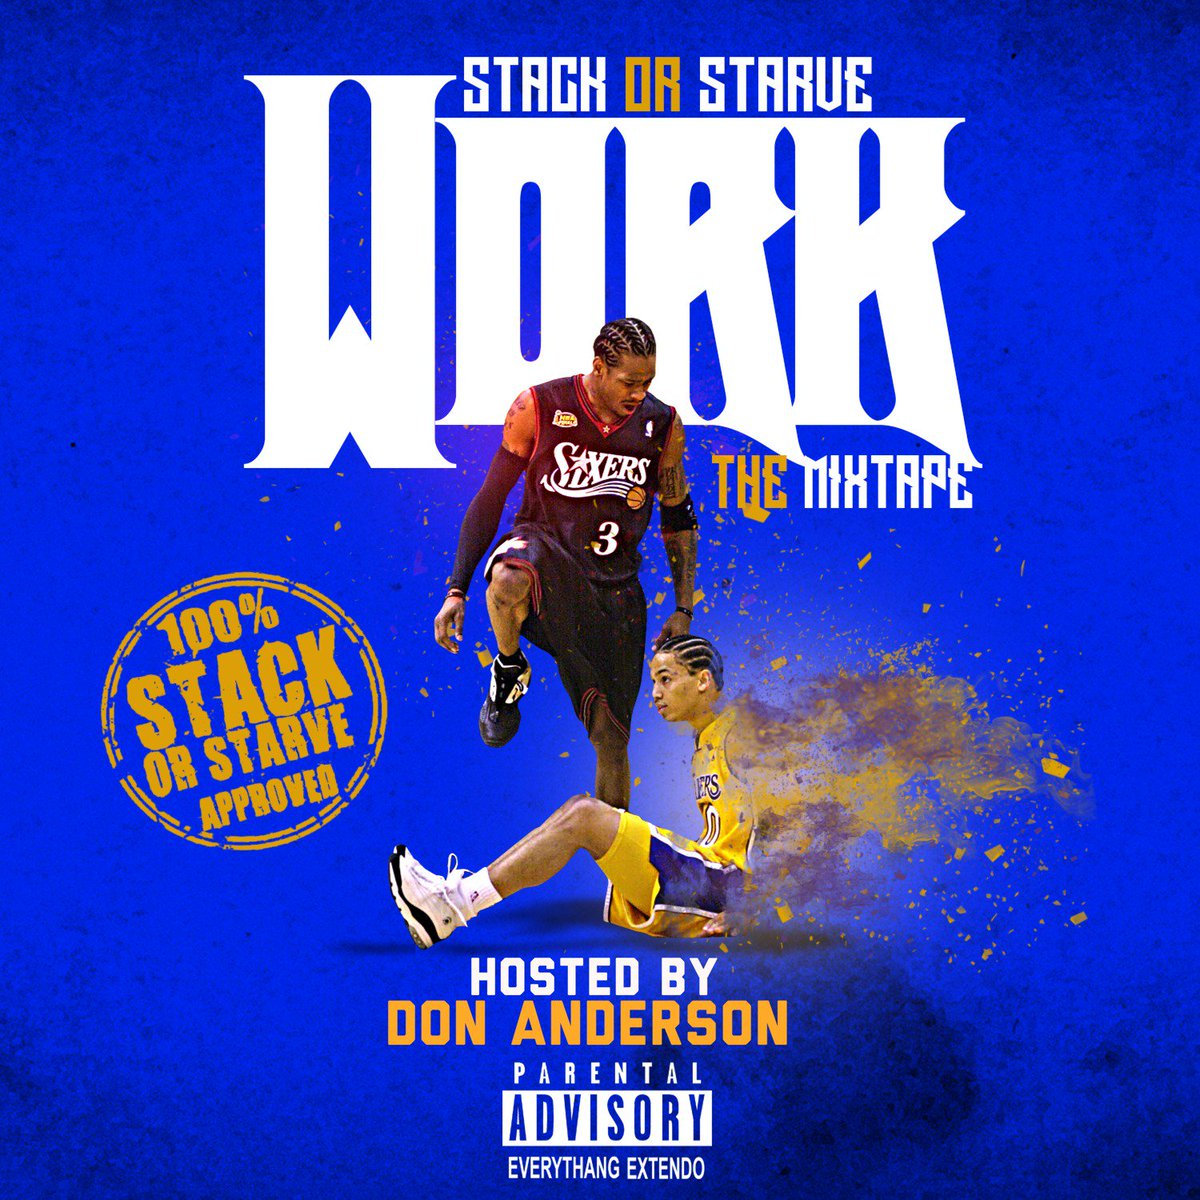 #NewMixtapeAlert #Work available now via @LiveMixtapes @indytapes Hosted by @StackorStarvDJS @DaDonGED! Go STREAM, DOWNLOAD, AND DONT FORGET TO VOTE NOW!! #ThaReport #ThaReportDotCom #StackOrStarveApproved #GEDEmpire